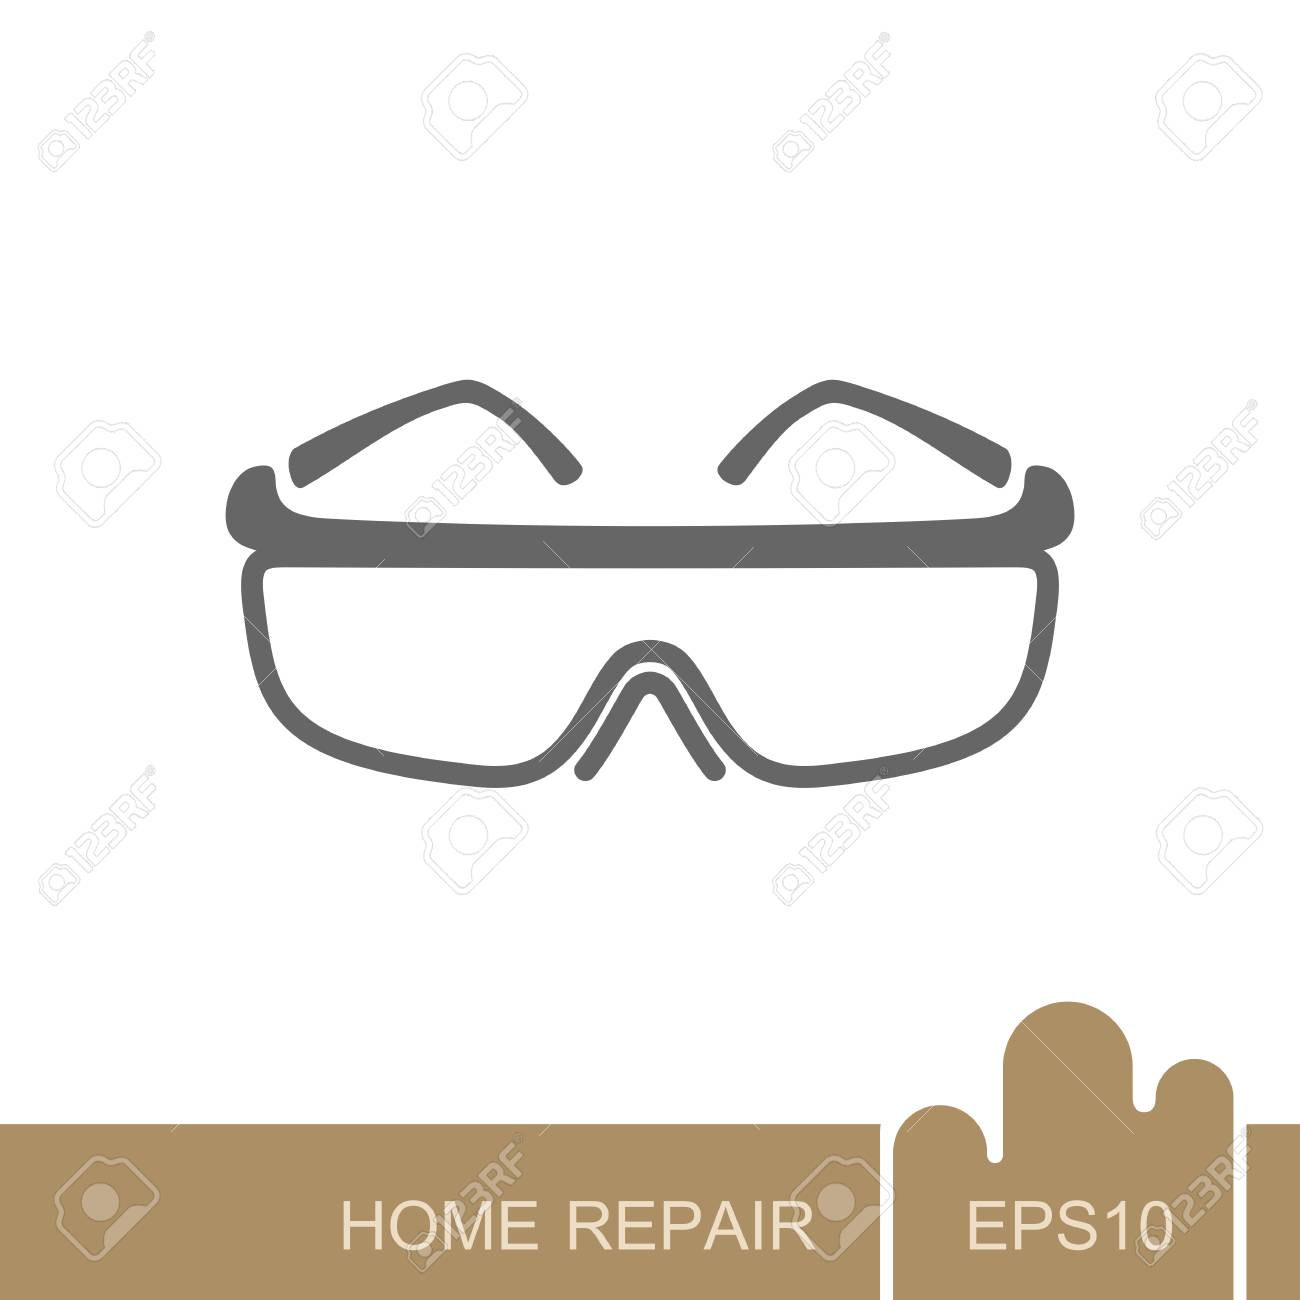 Safety goggles icon. Construction, repair and building vector design and illustration - 118430764